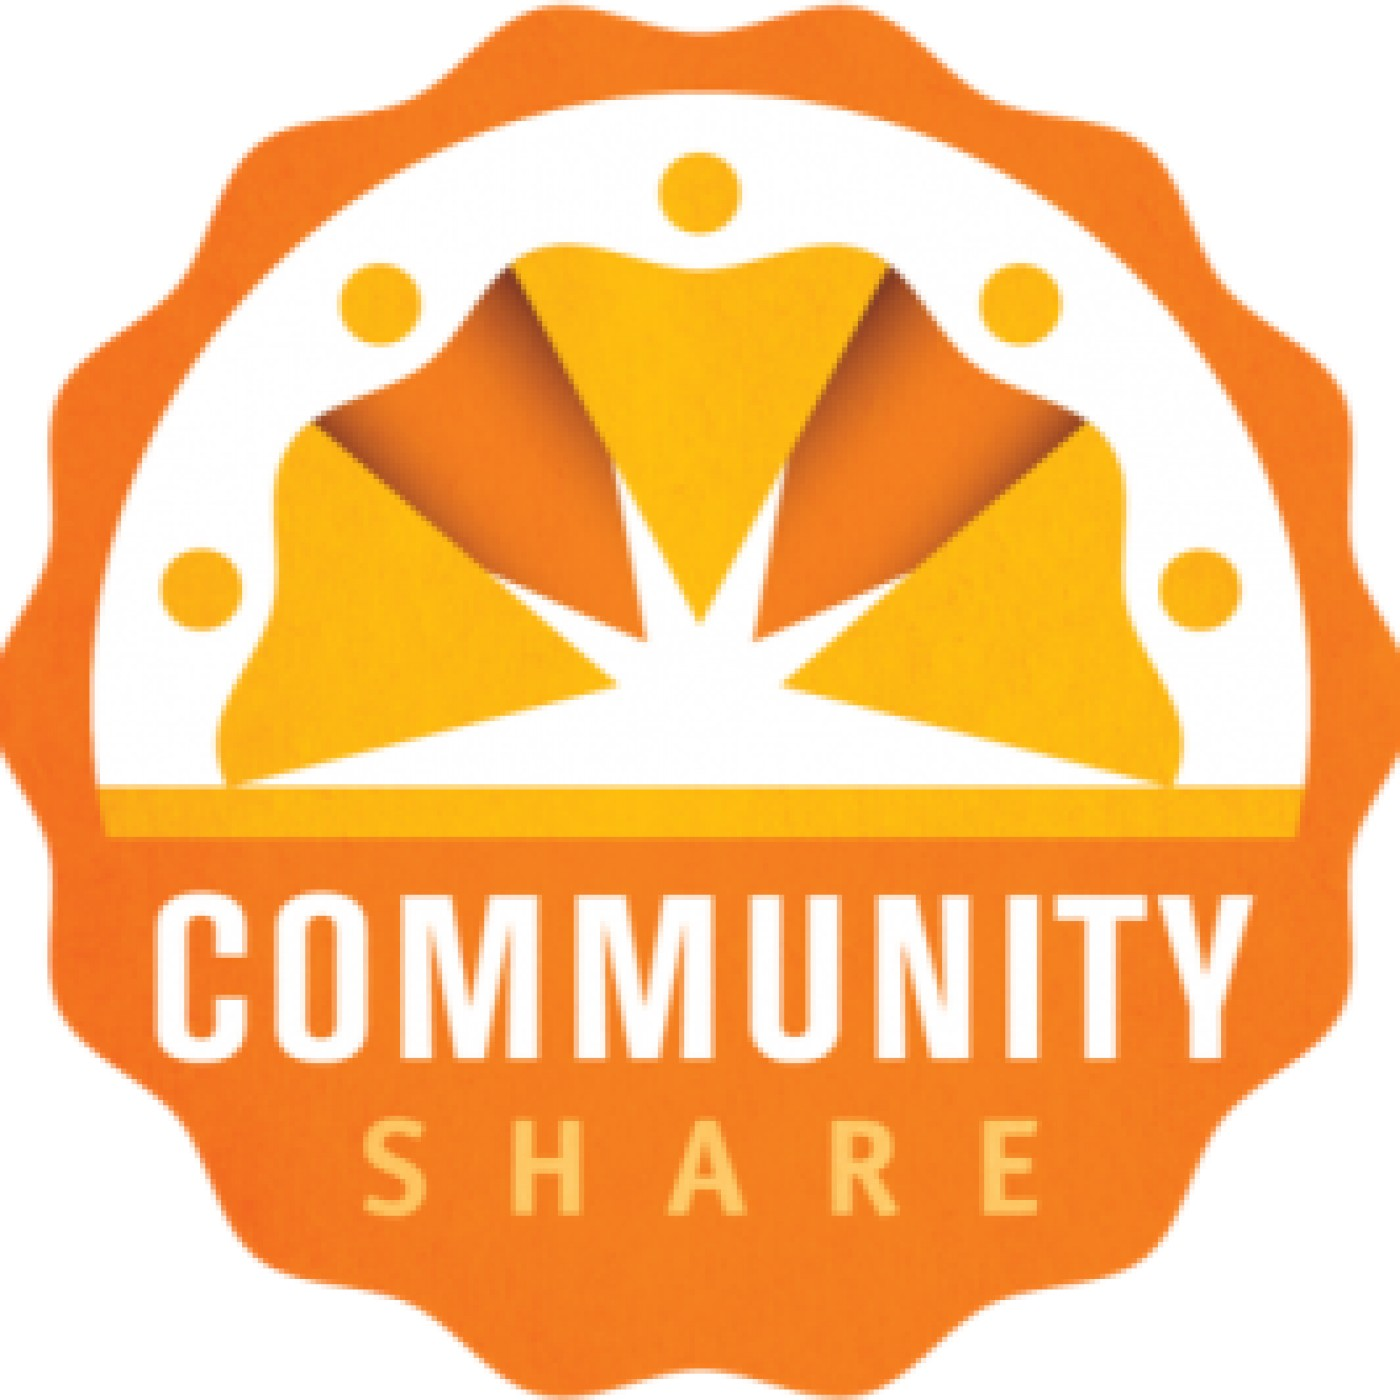 Josh Schachter, Creating Connections with Community Share